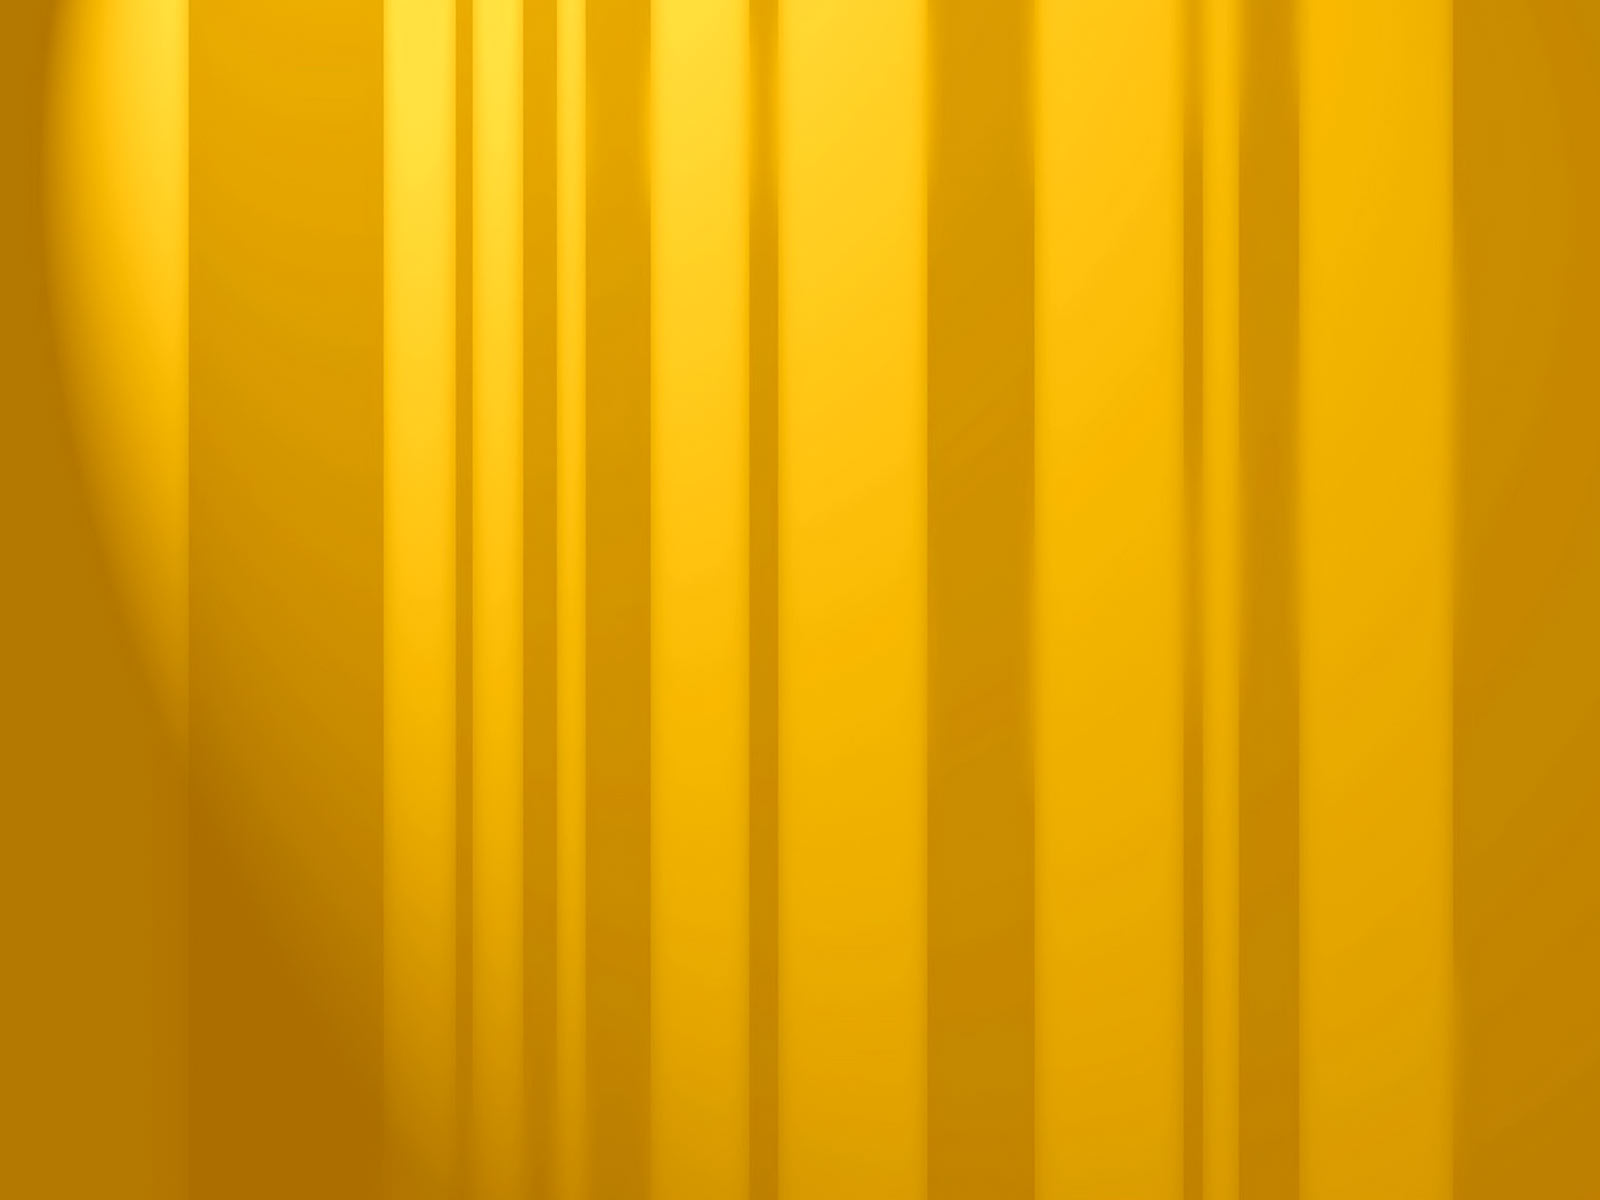 the yellow wall paper An analysis of charlotte gilman's the yellow wallpaper that can be used to better understand the underlying themes in the book.